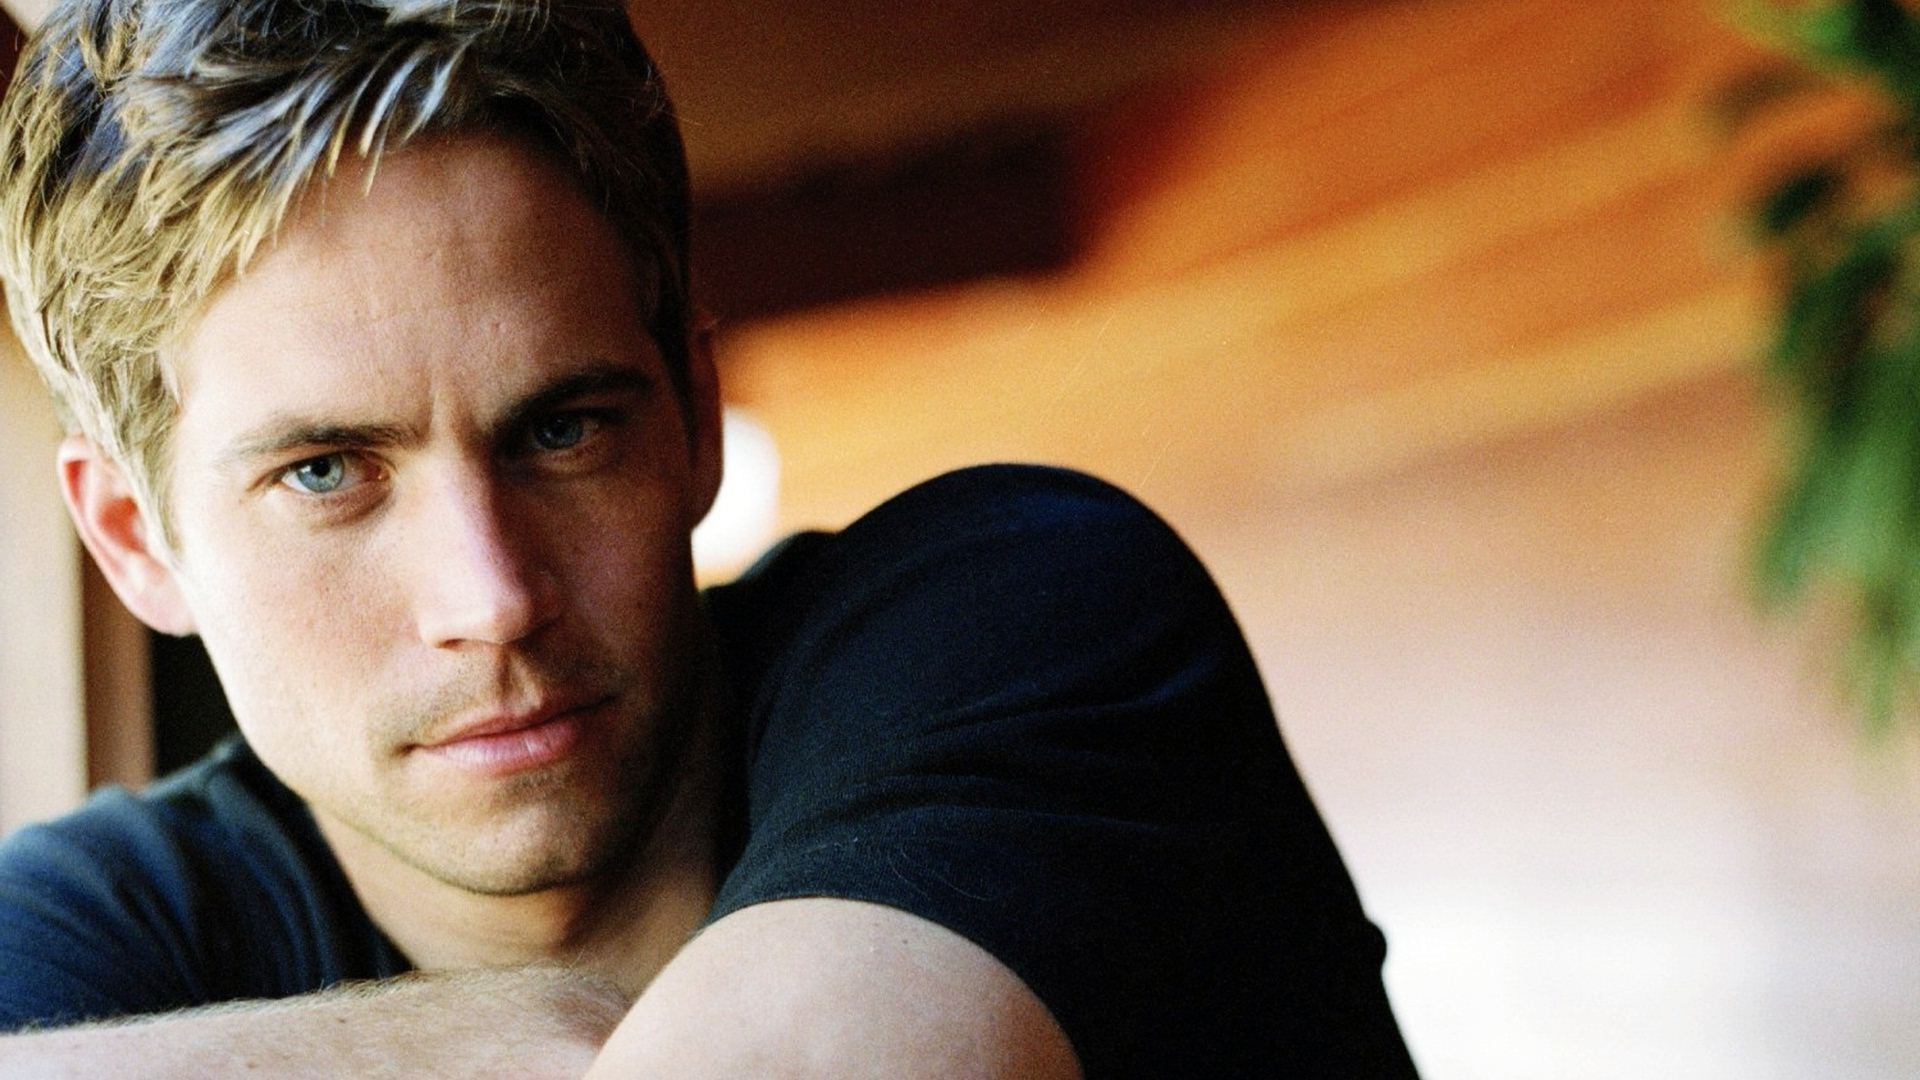 1920x1080 Paul Walker Hd Wallpapers Fast Furious Wallpaper Free 7